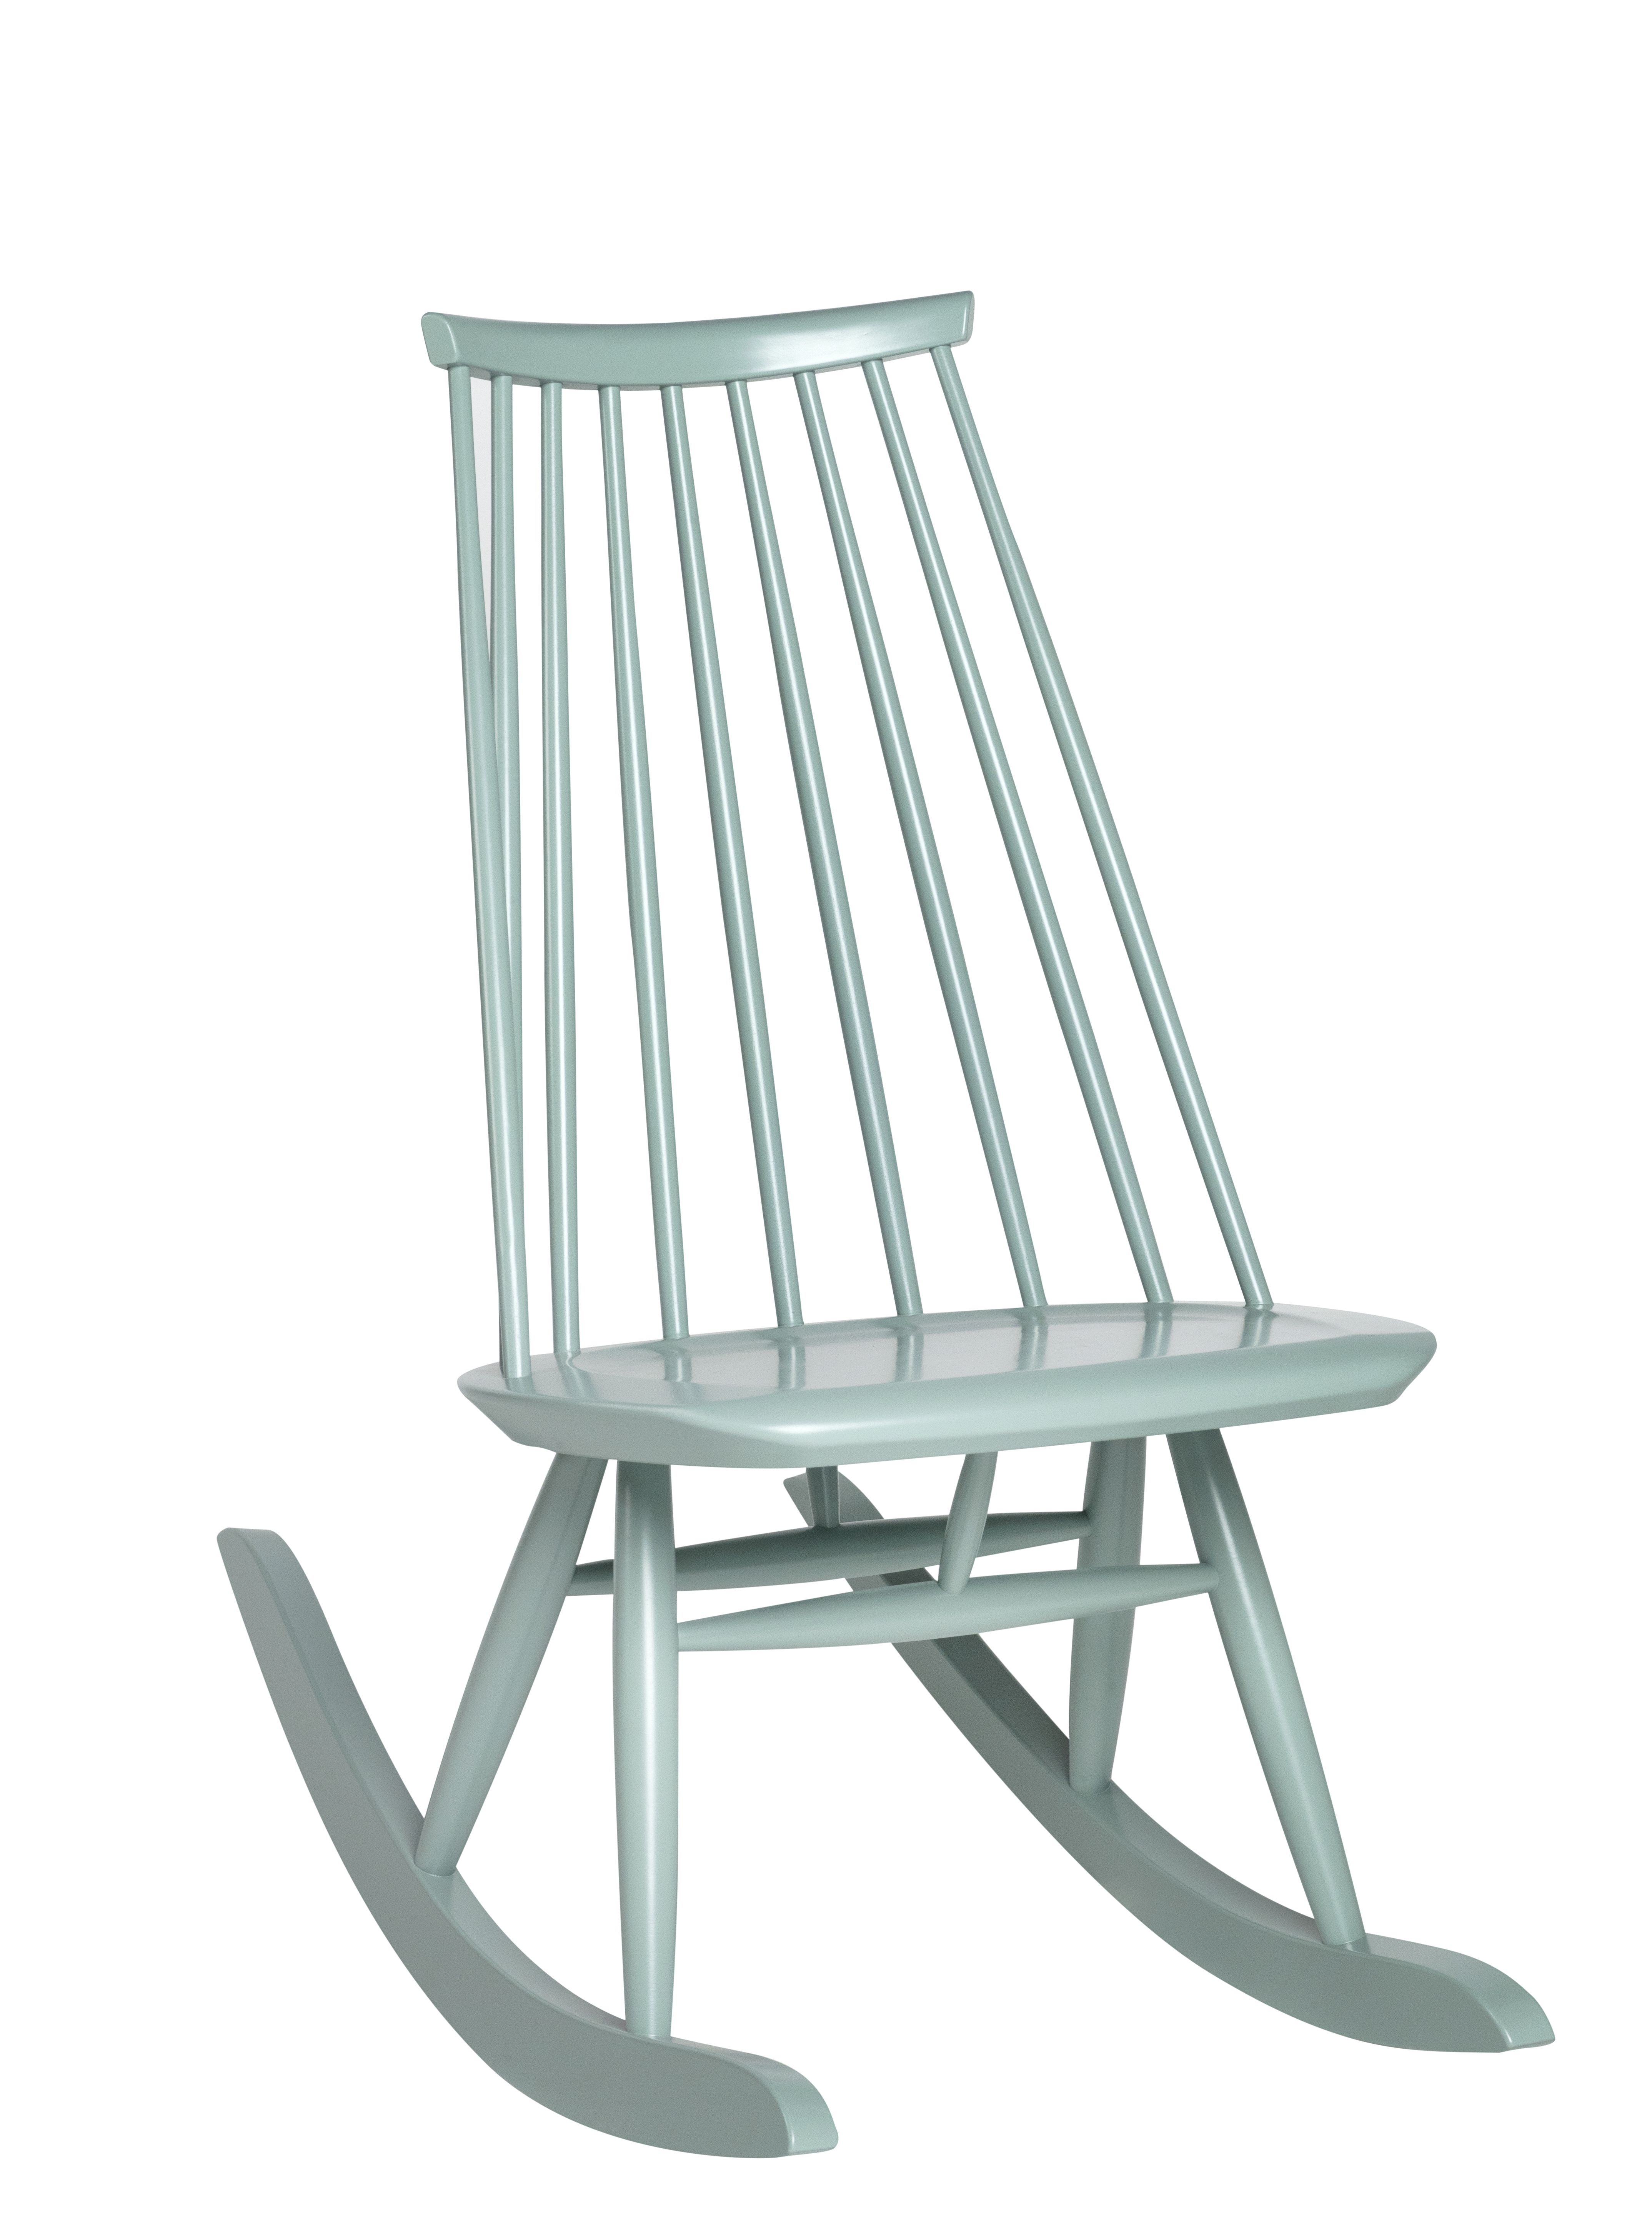 Strange Artek Mademoiselle Rocking Chair Lounge Chair Design Dailytribune Chair Design For Home Dailytribuneorg